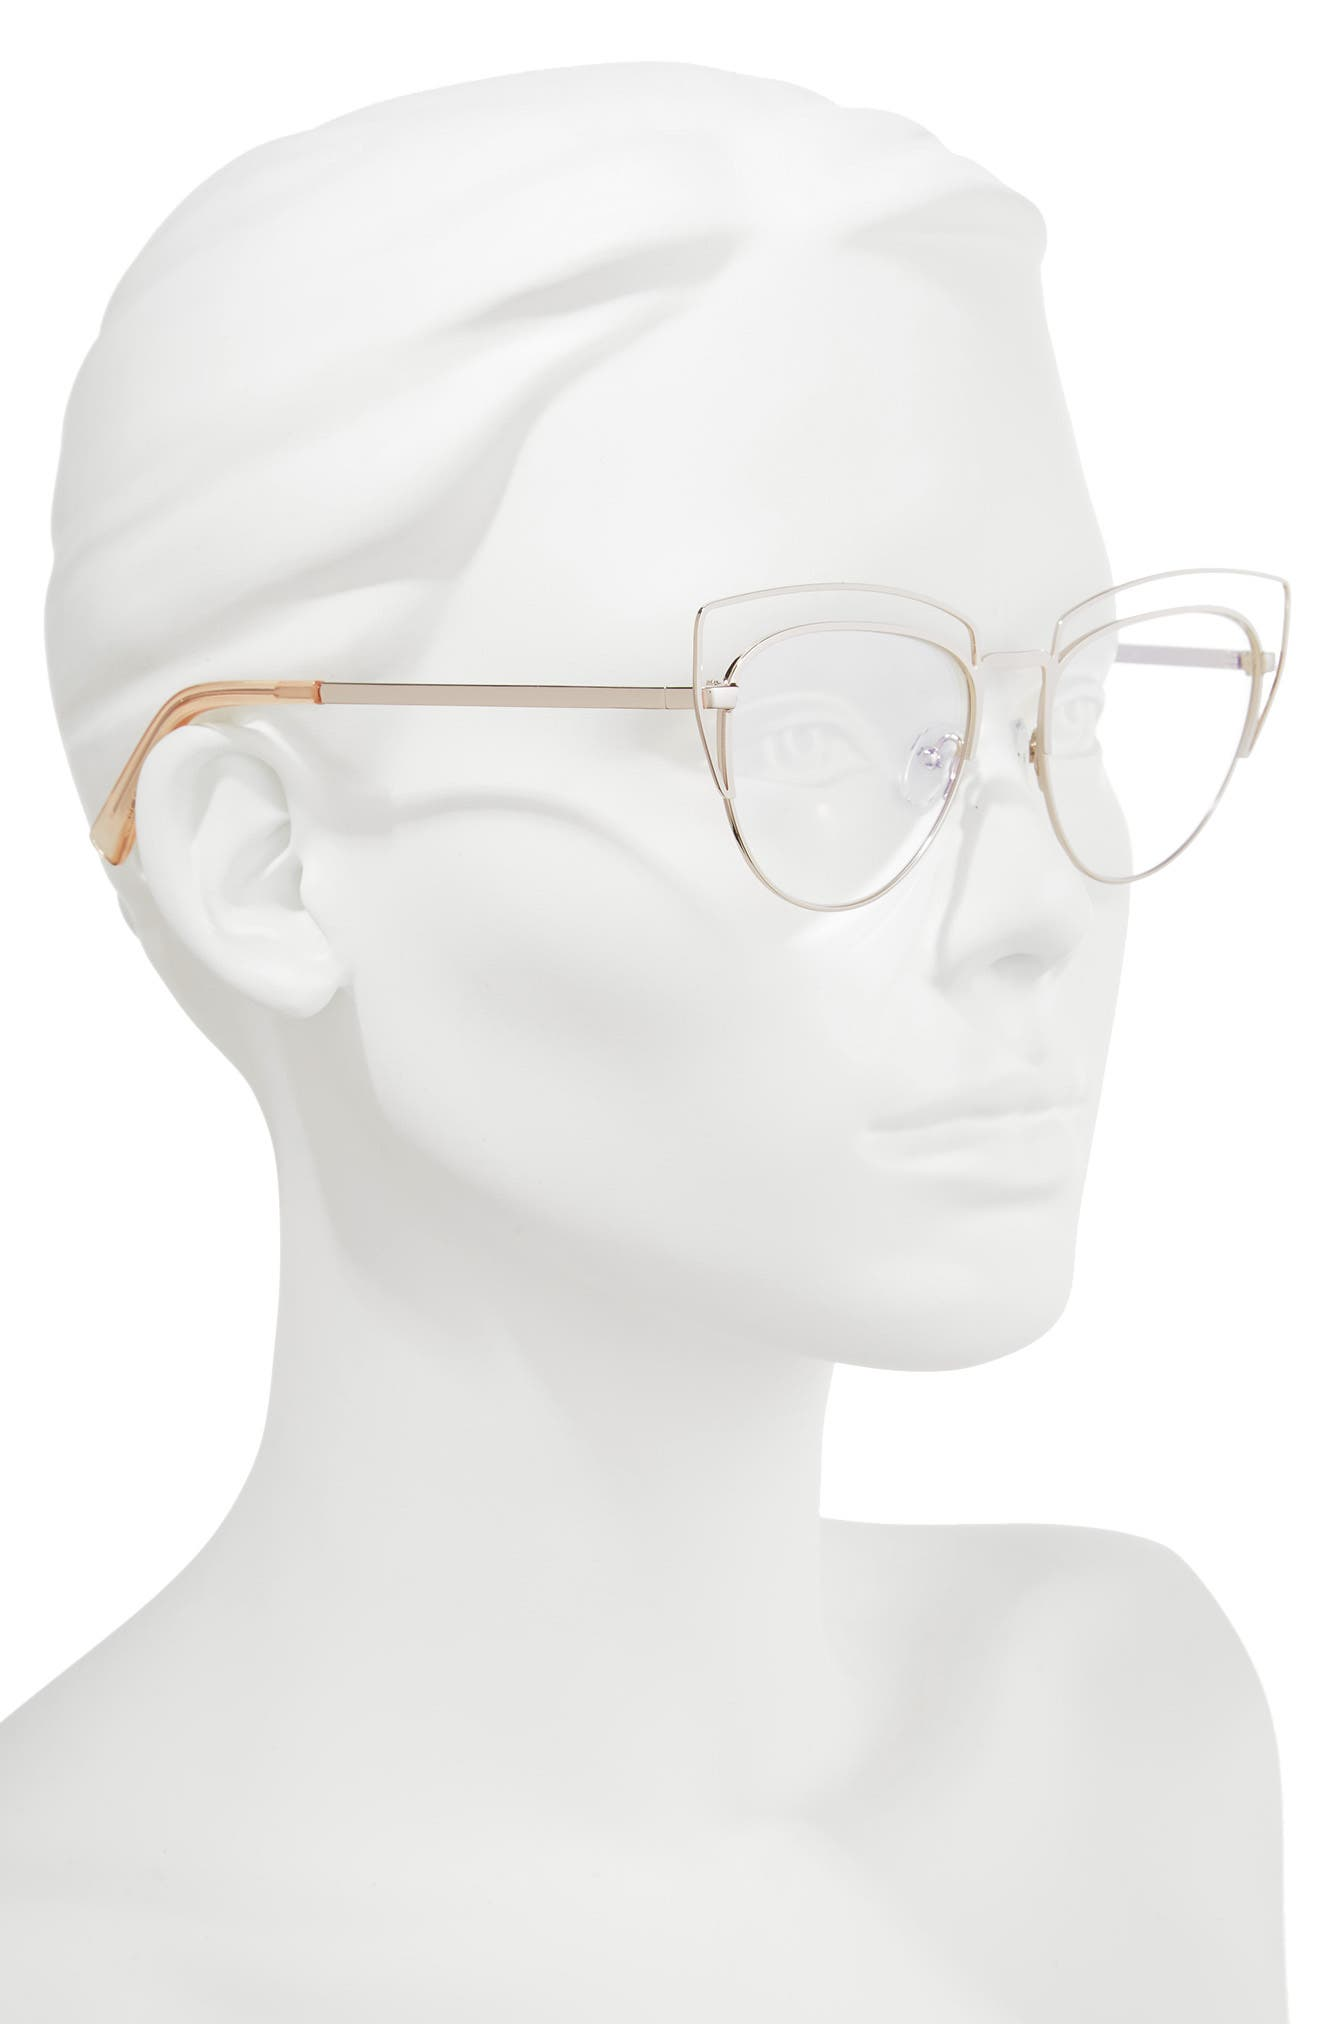 One Hundred Beers Of Solitude 55mm Reading Glasses,                             Alternate thumbnail 2, color,                             710